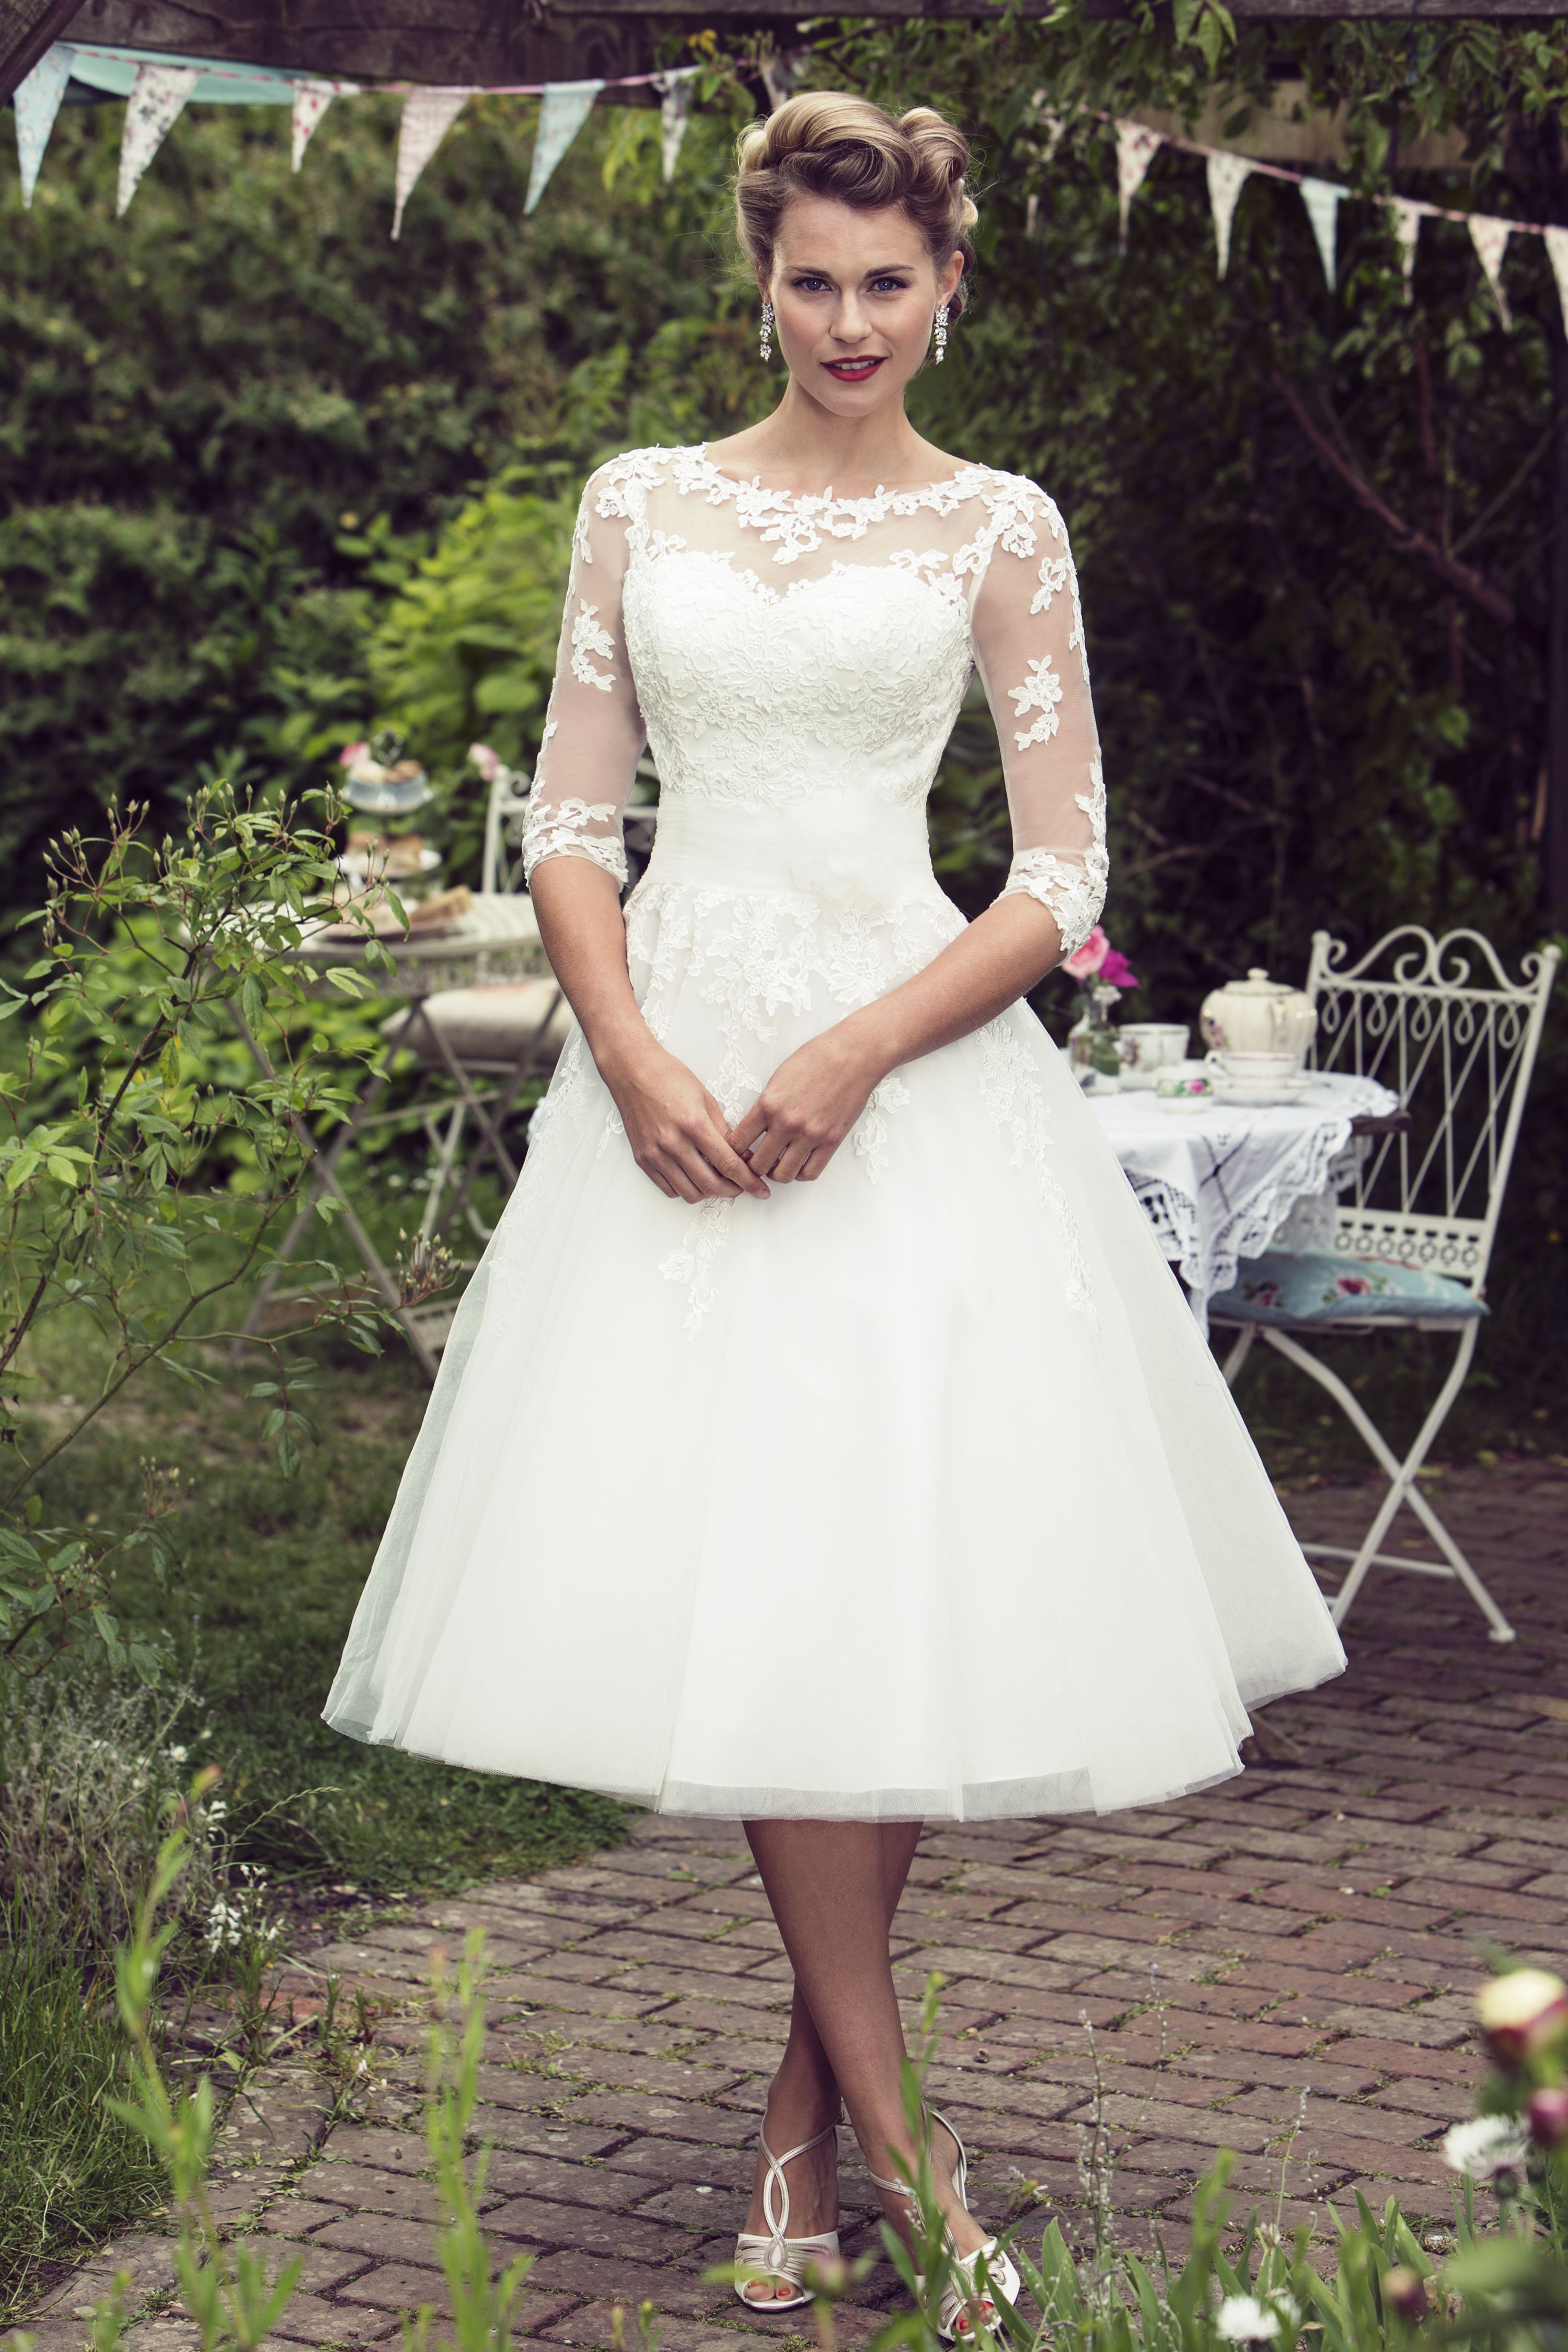 Bonnie - Brighton Belle collection by True Bride brings you this ...